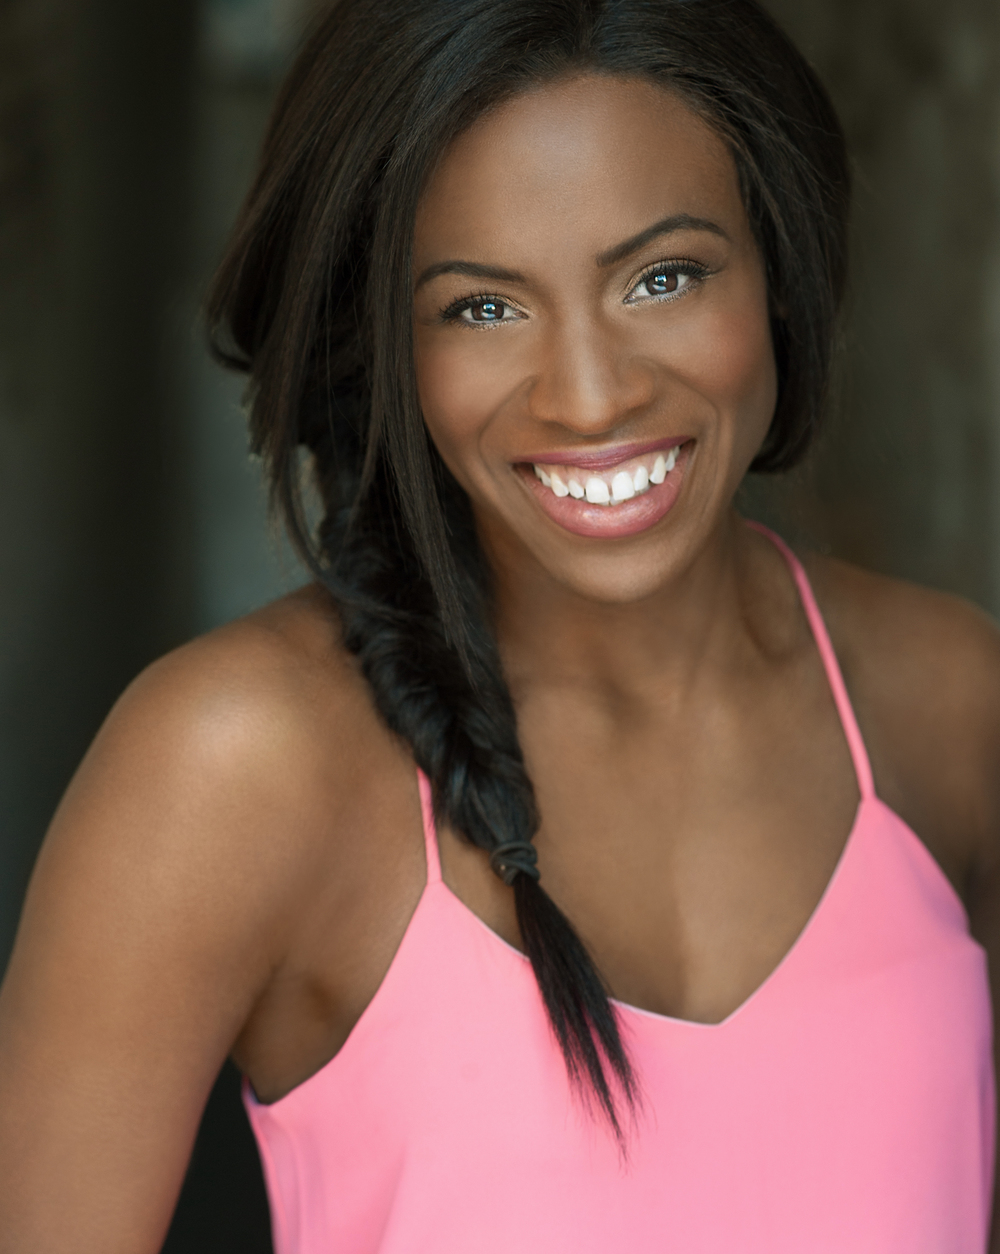 Angelica Gregory - Headshot #1.jpg